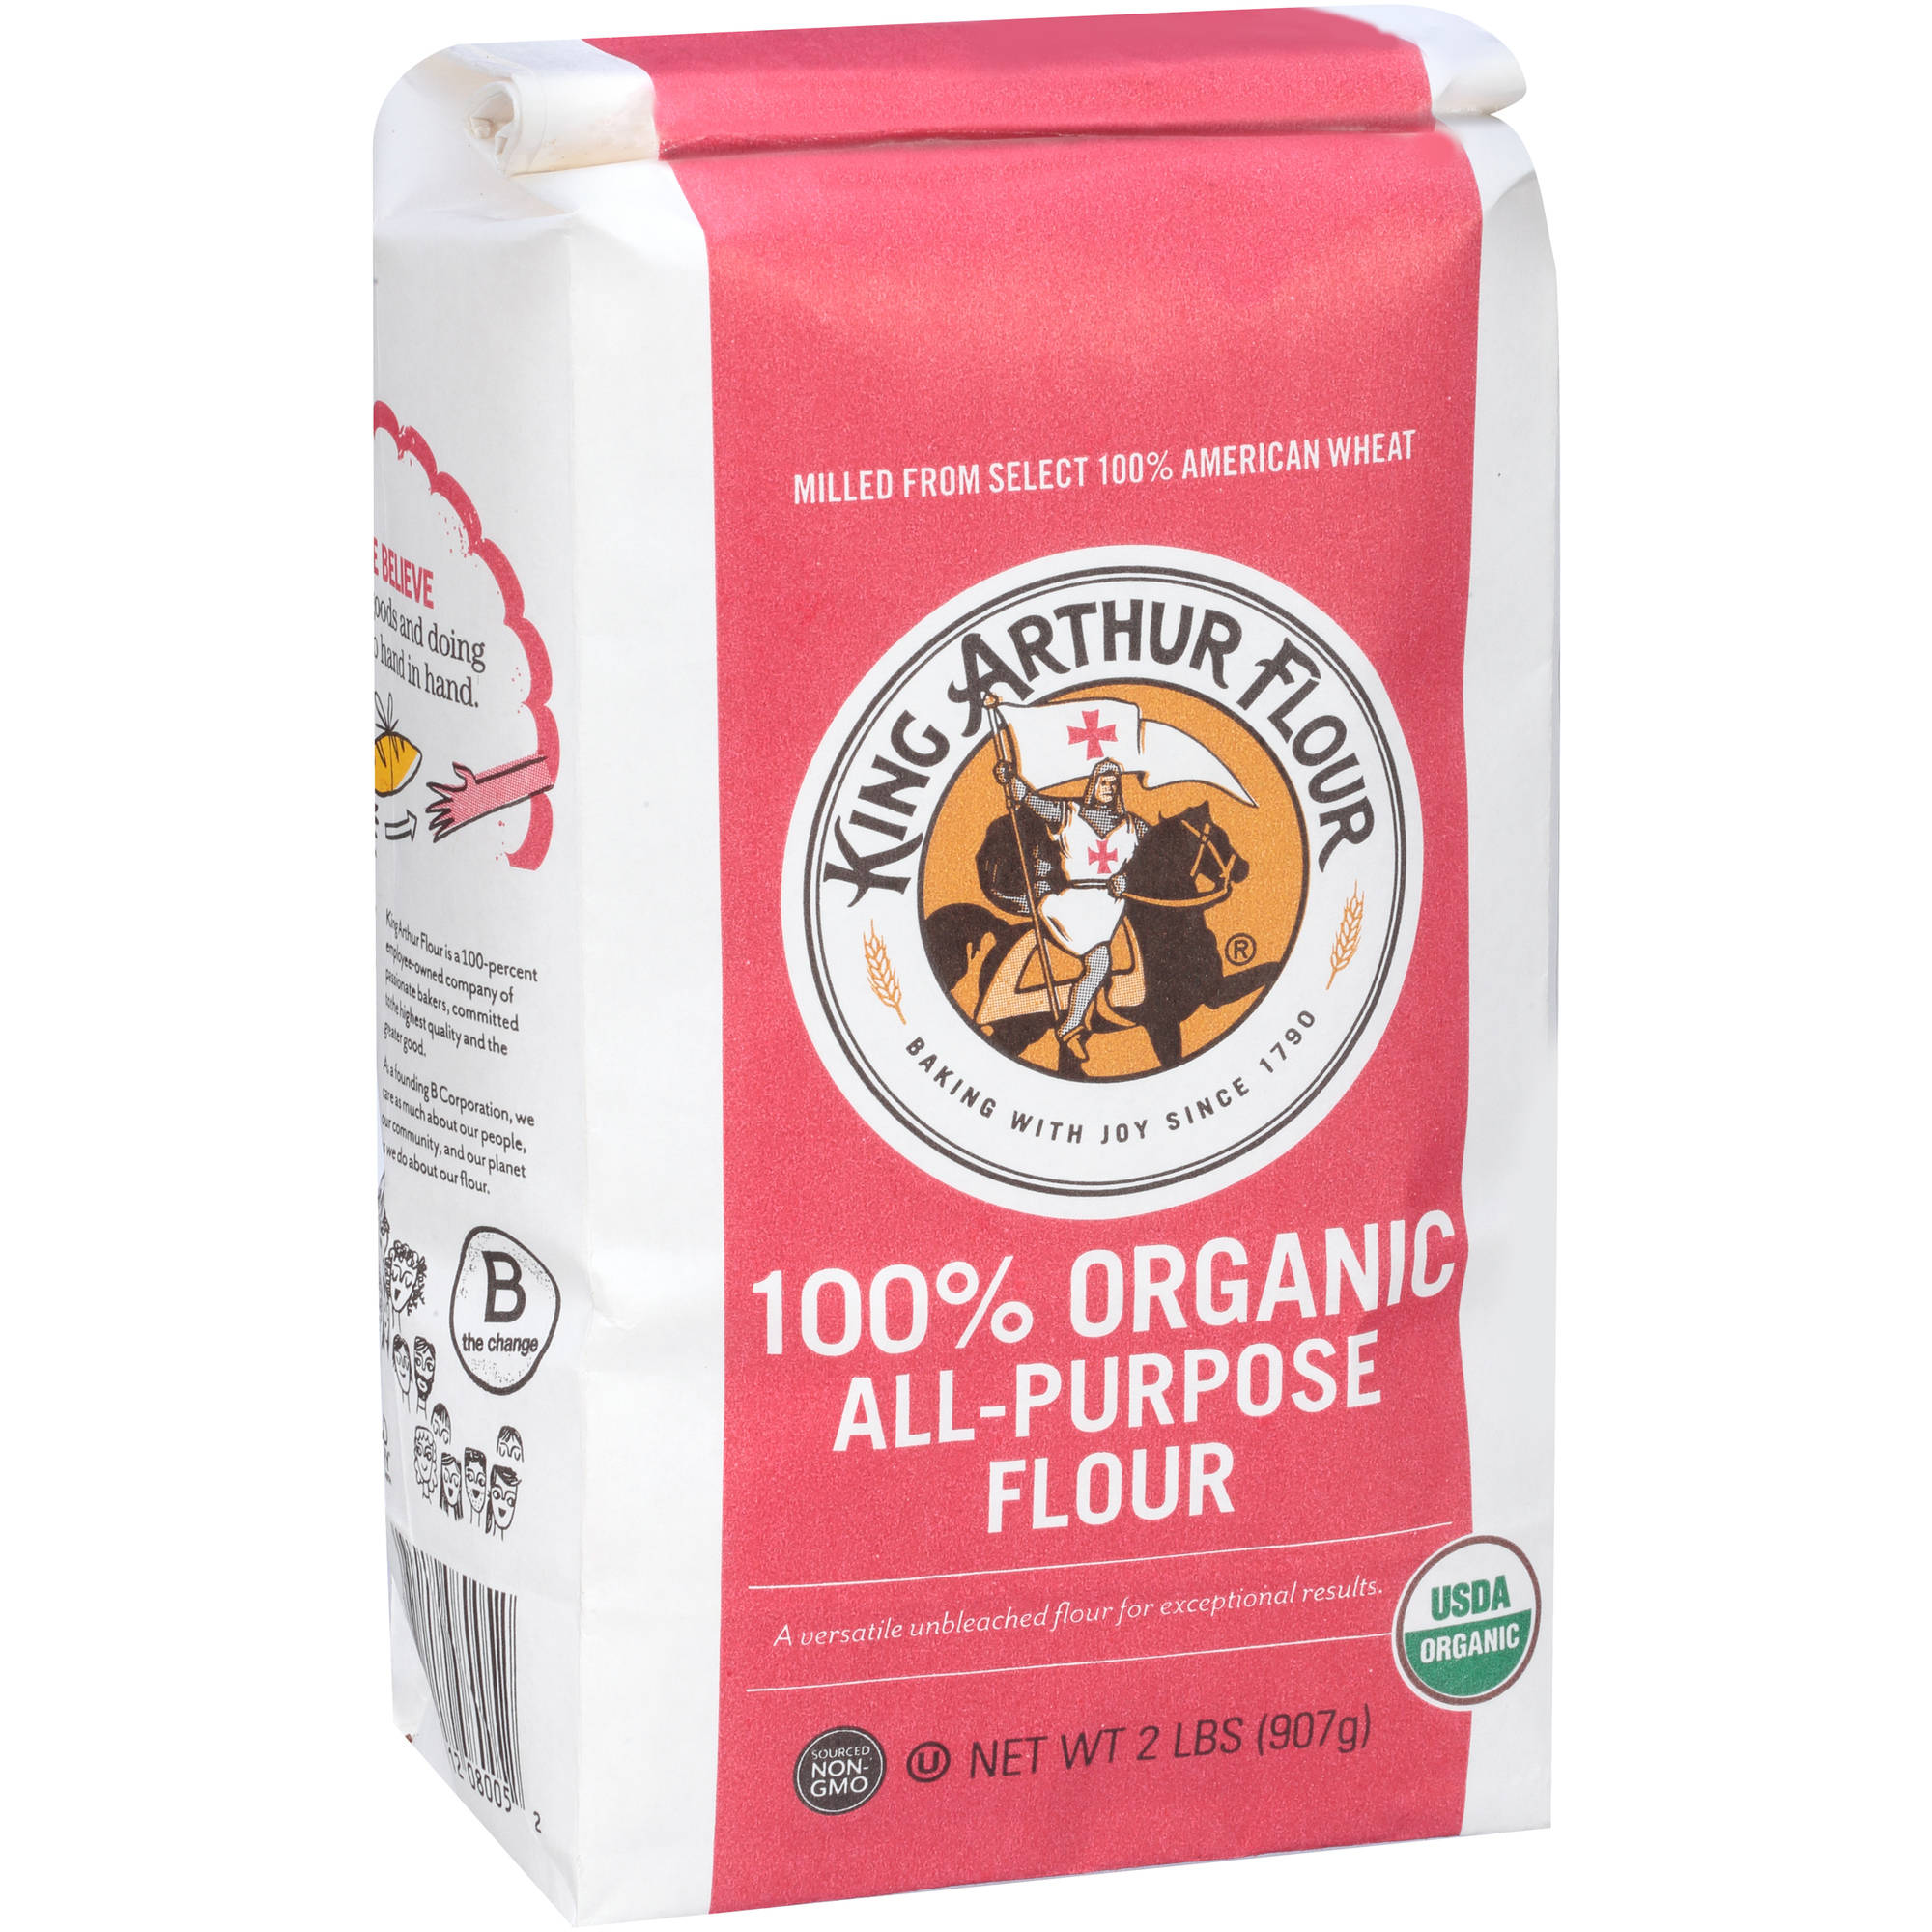 King Arthur Flour 100% Organic All-Purpose Flour, 2 lbs